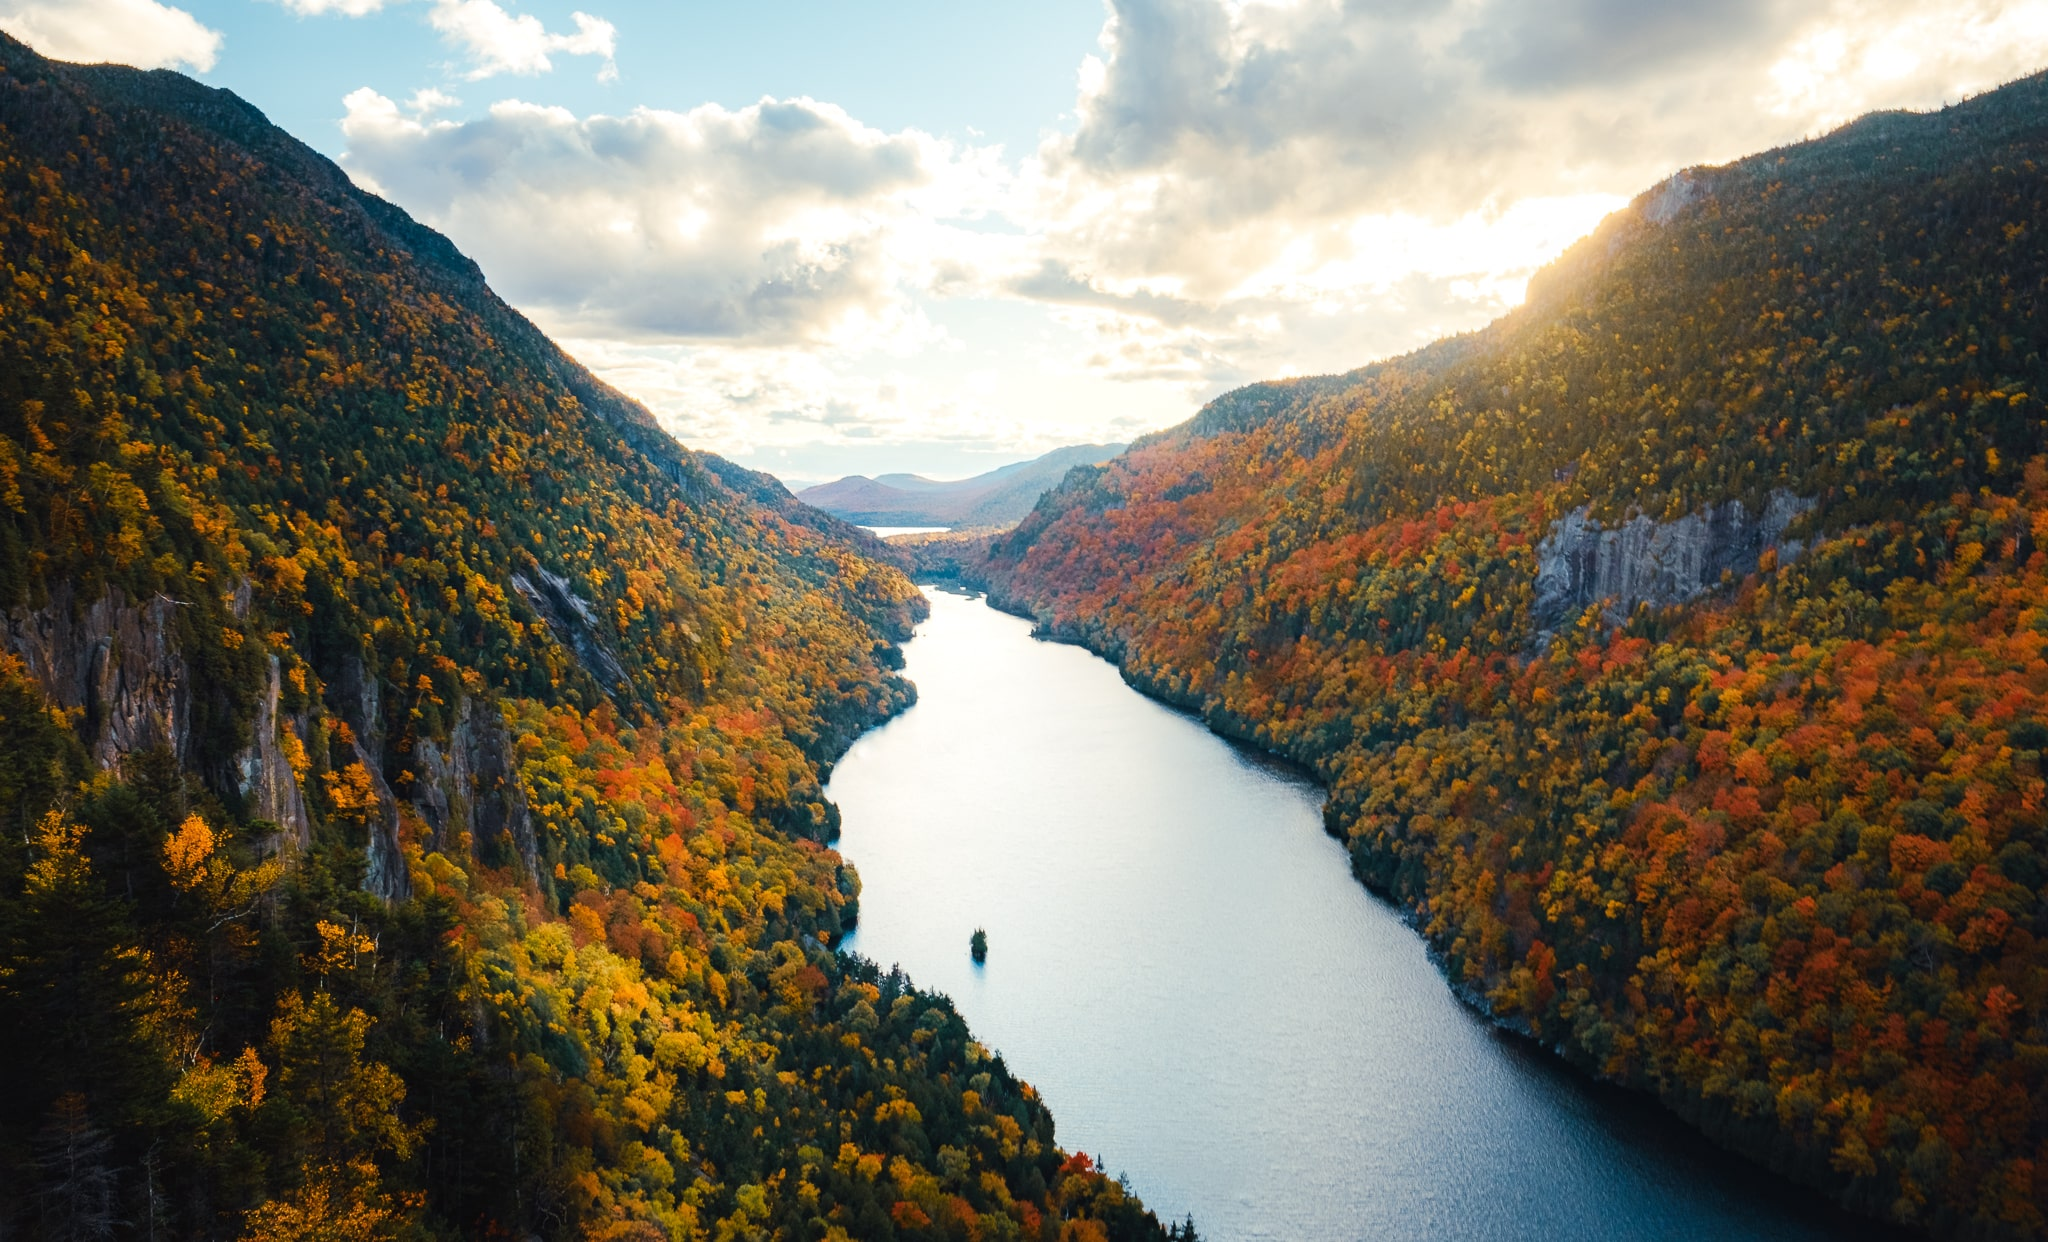 The Adirondack Mountains are one of the best places to see fall foliage in New York